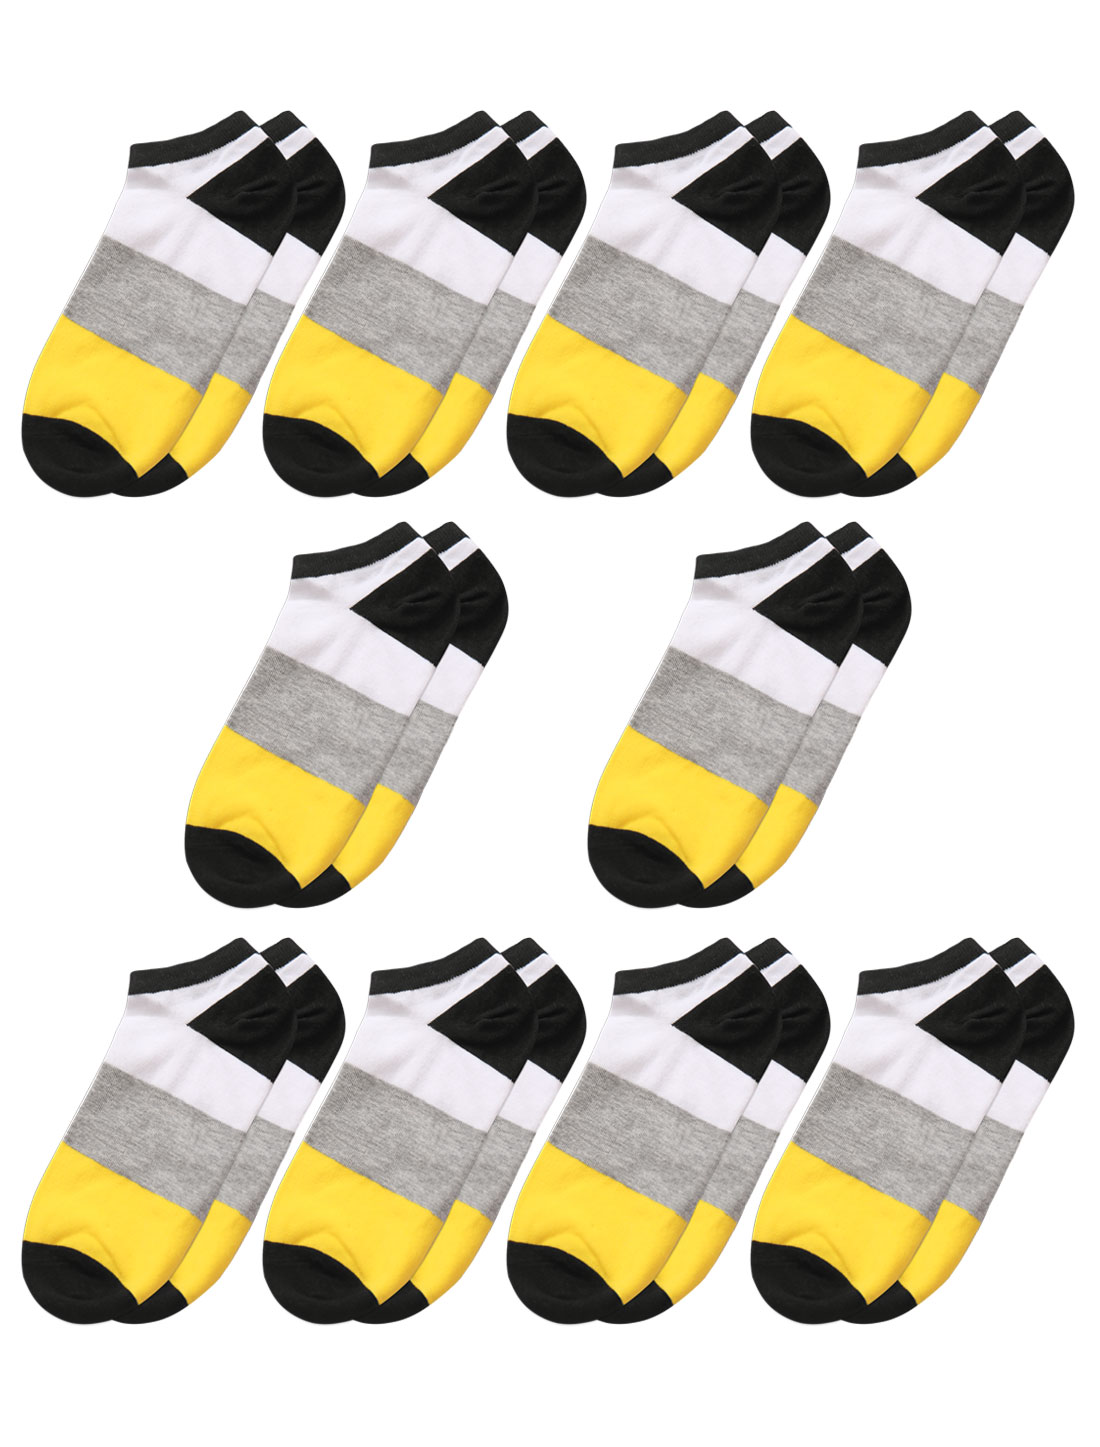 Men Low Cut Ankle Length Color Block Short Socks 10 Pairs Yellow M